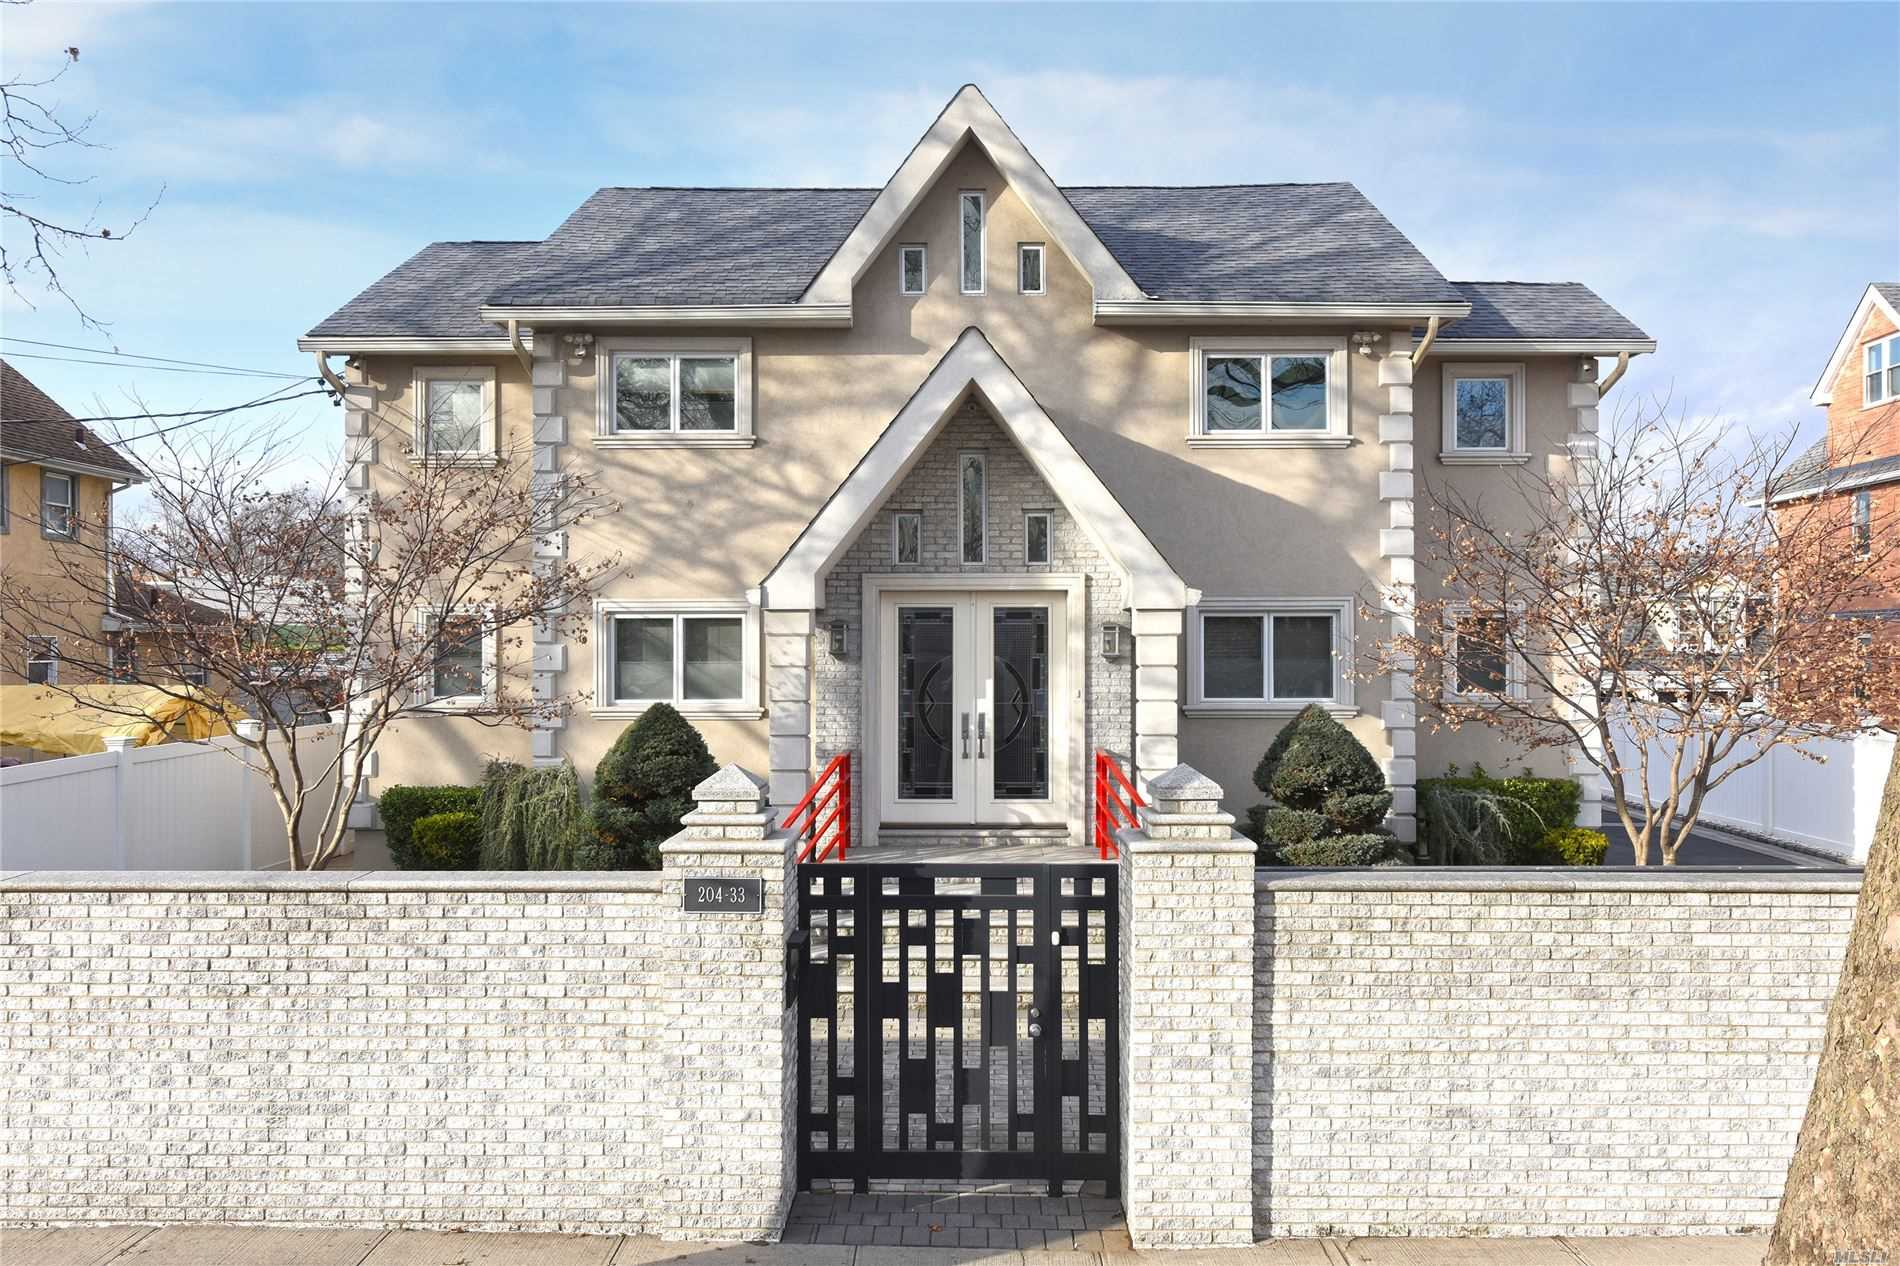 Property for sale at 204-33 45th Road, Bayside,  New York 11361